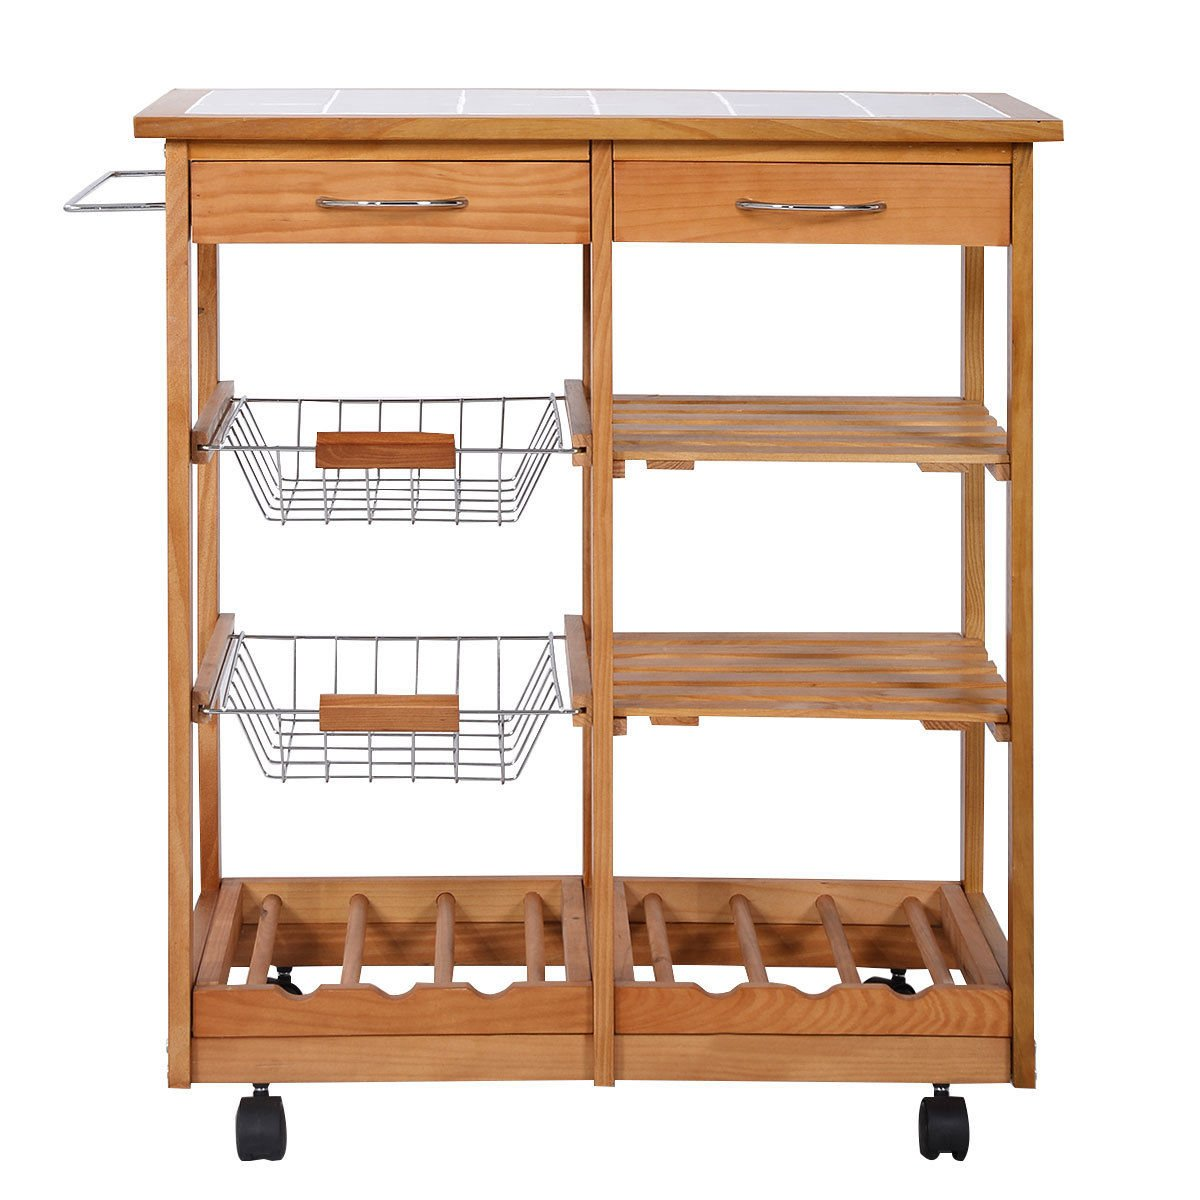 Amazon.com   Rolling Wood Kitchen Trolley Cart Countertop Dining Storage  Drawers Stand New   Kitchen Islands U0026 Carts